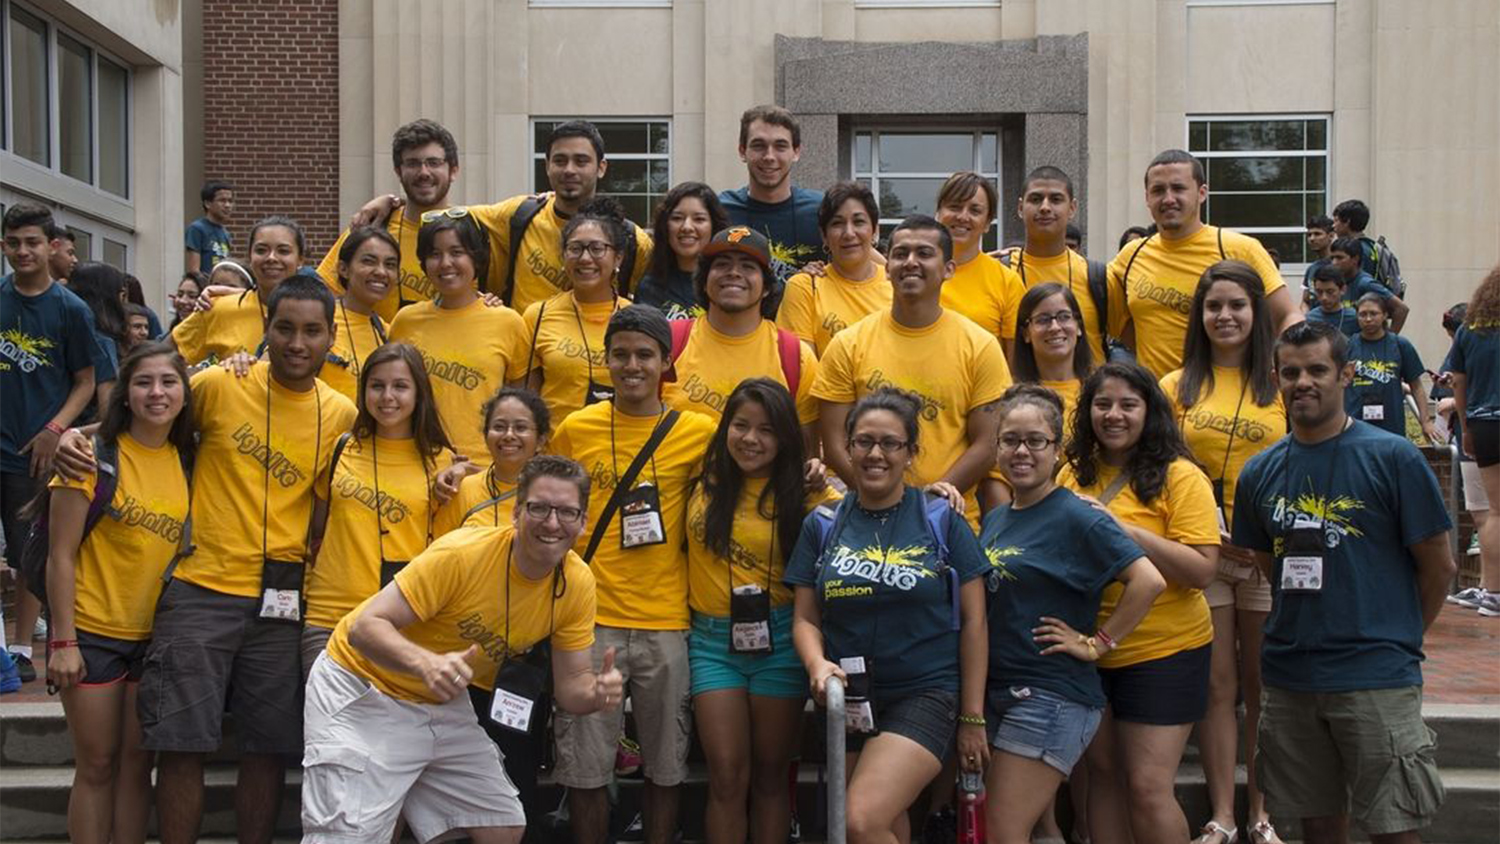 A group of students in yellow shirts